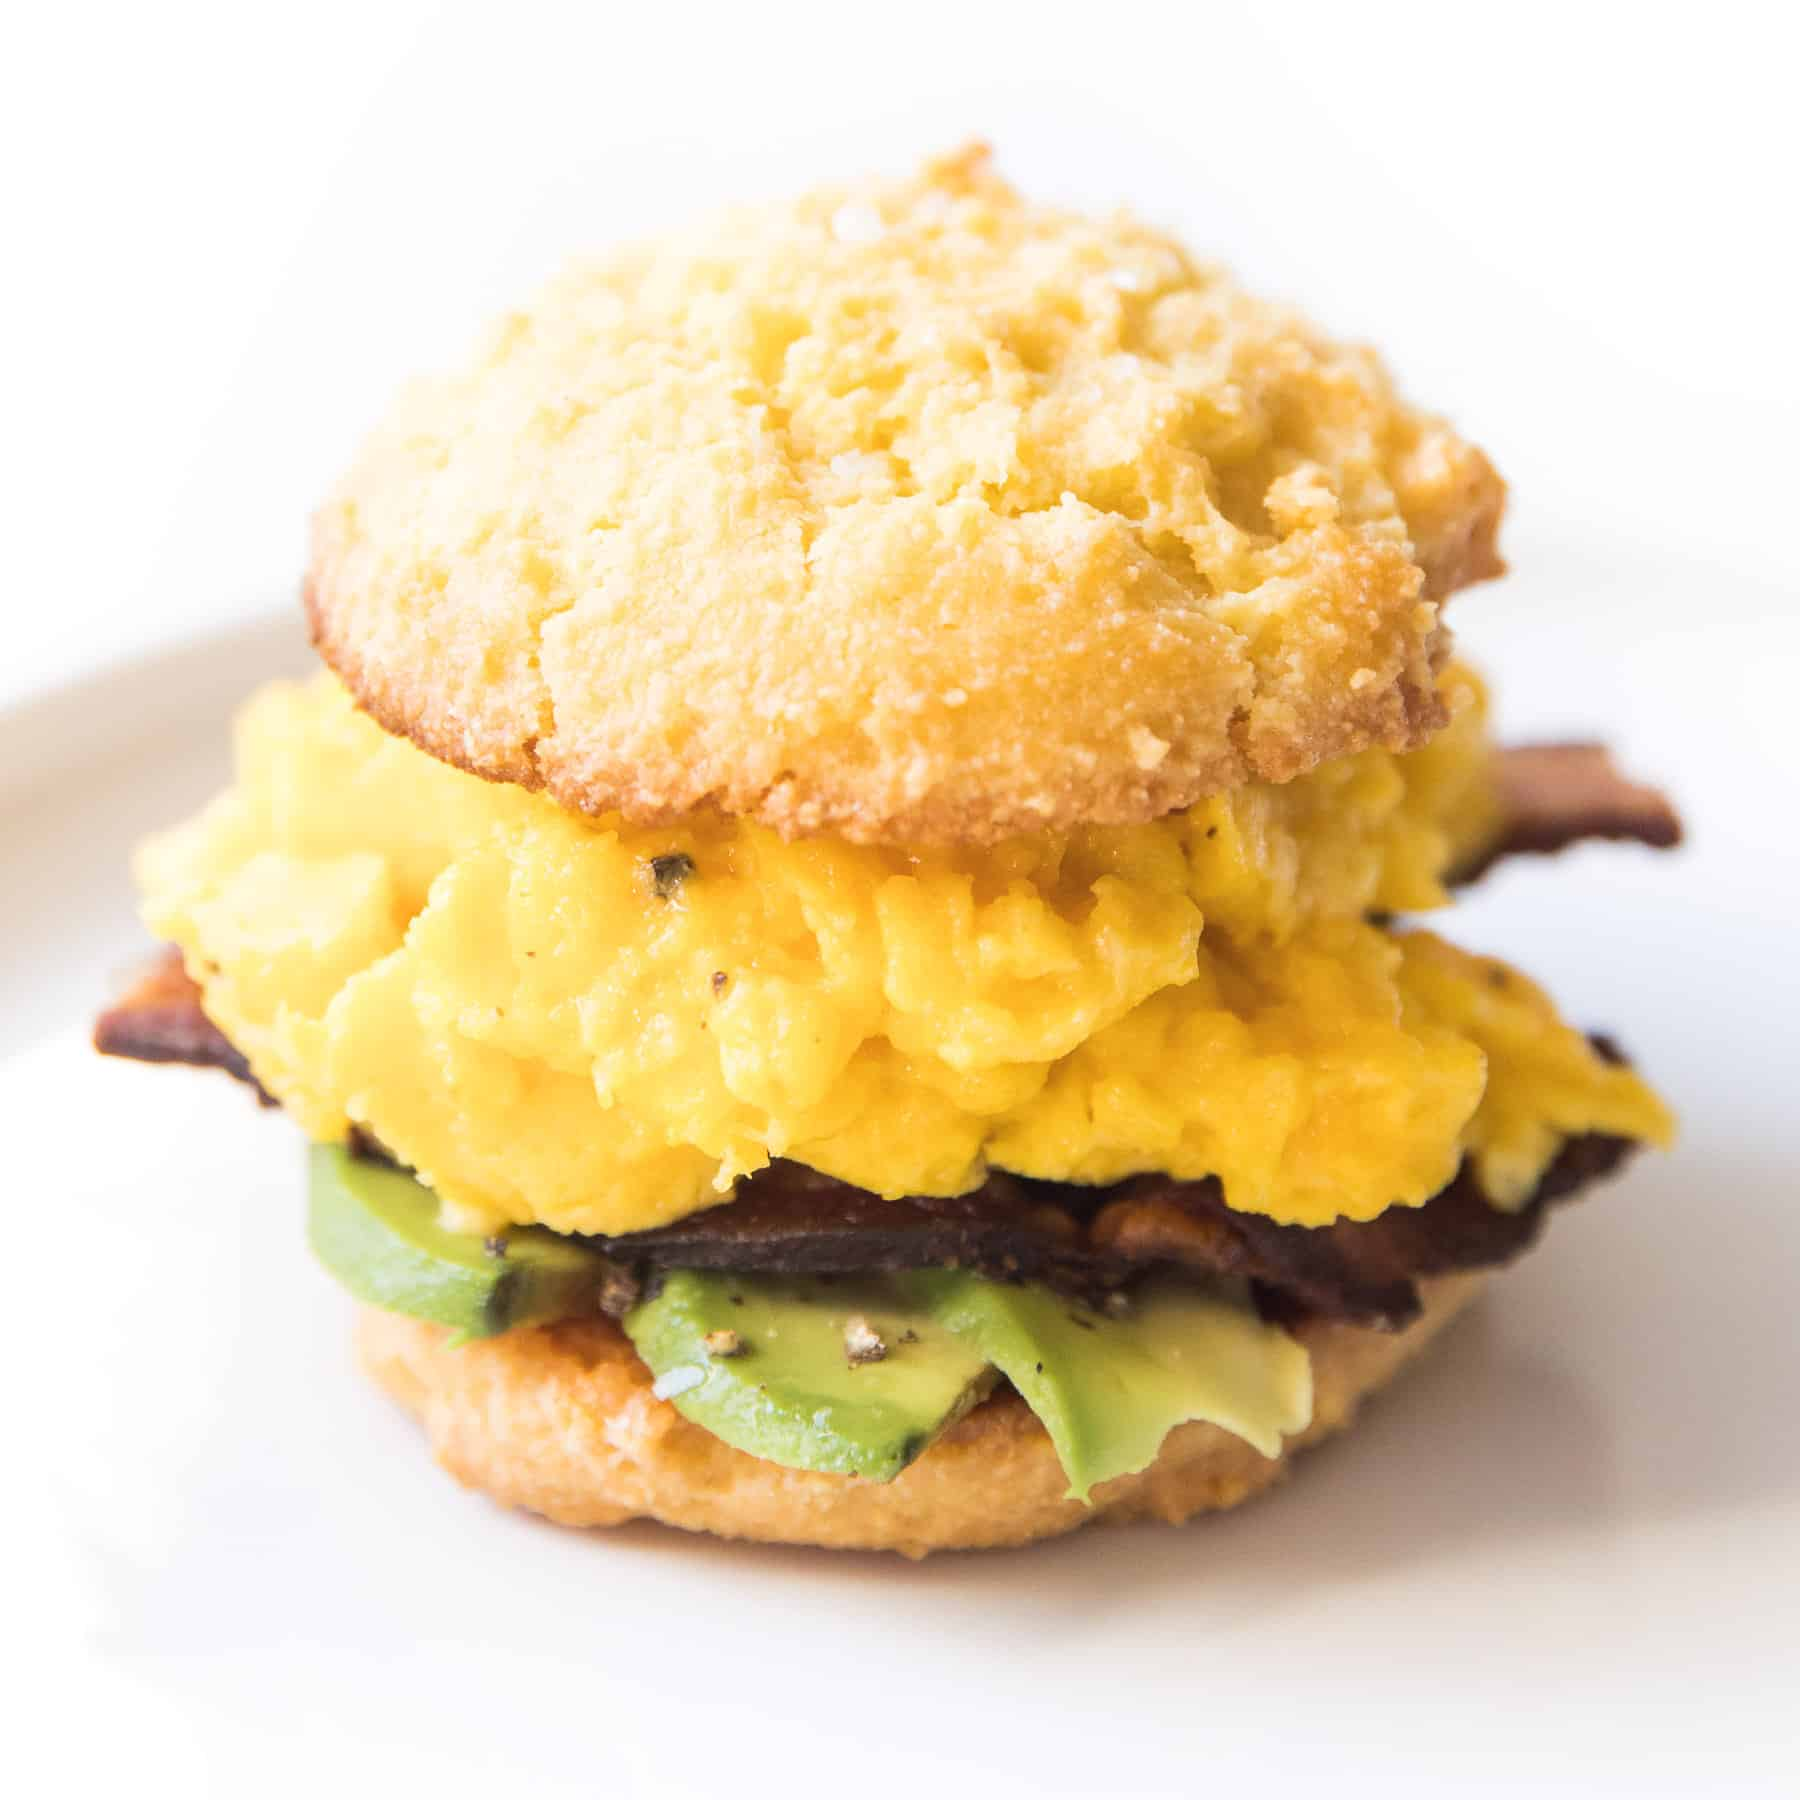 keto biscuit breakfast sandwich with egg, bacon and avocado on a white plate and background